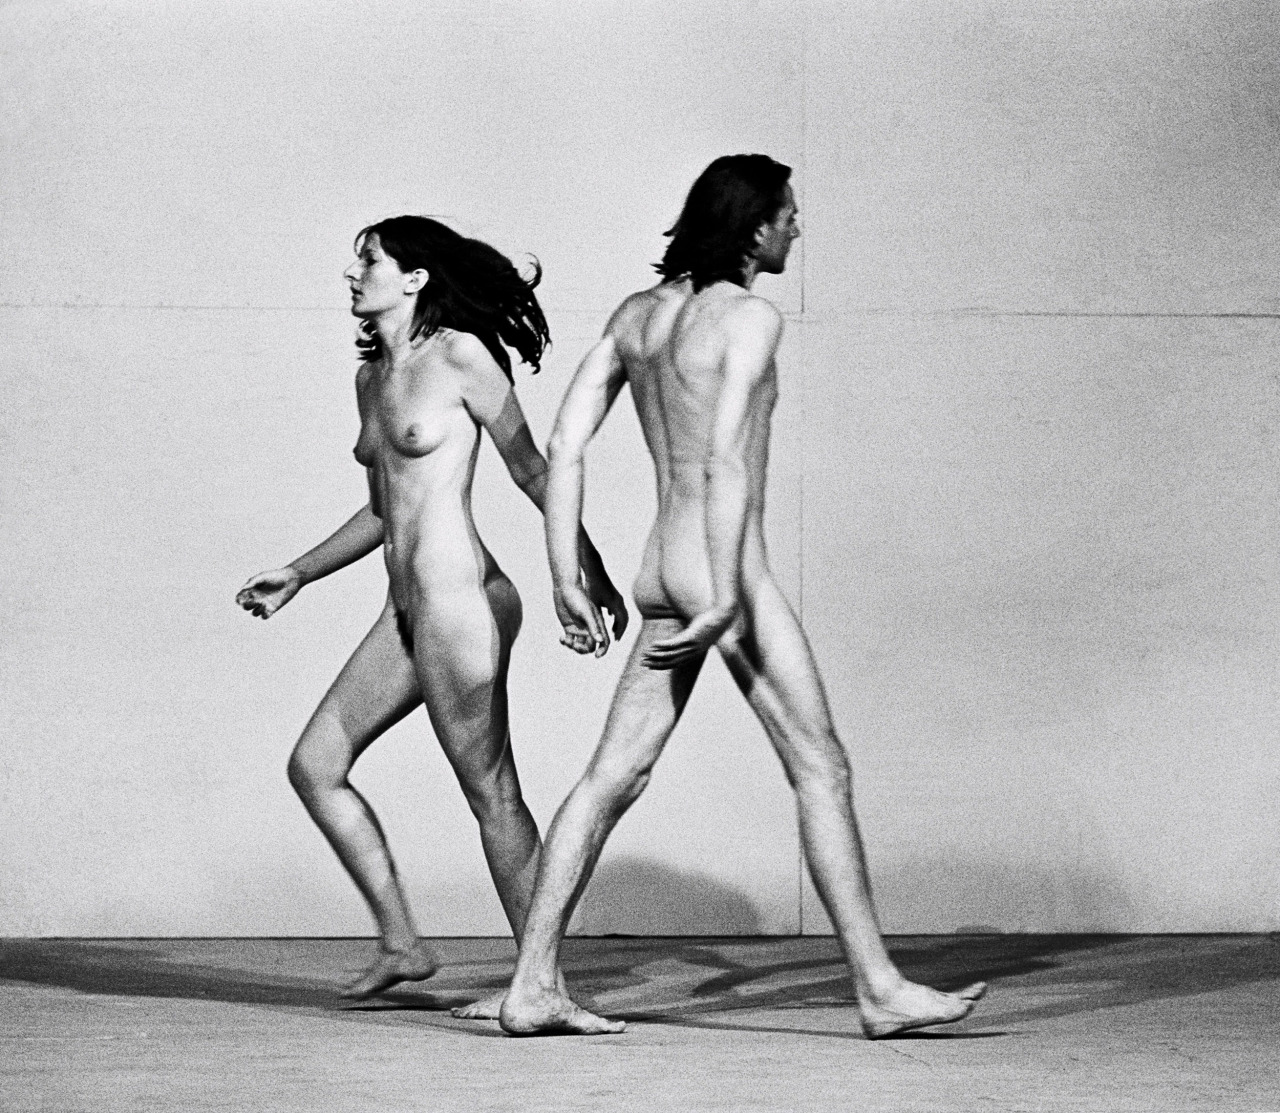 Marina Abramović: Relation in Space with Ulay circa 1976